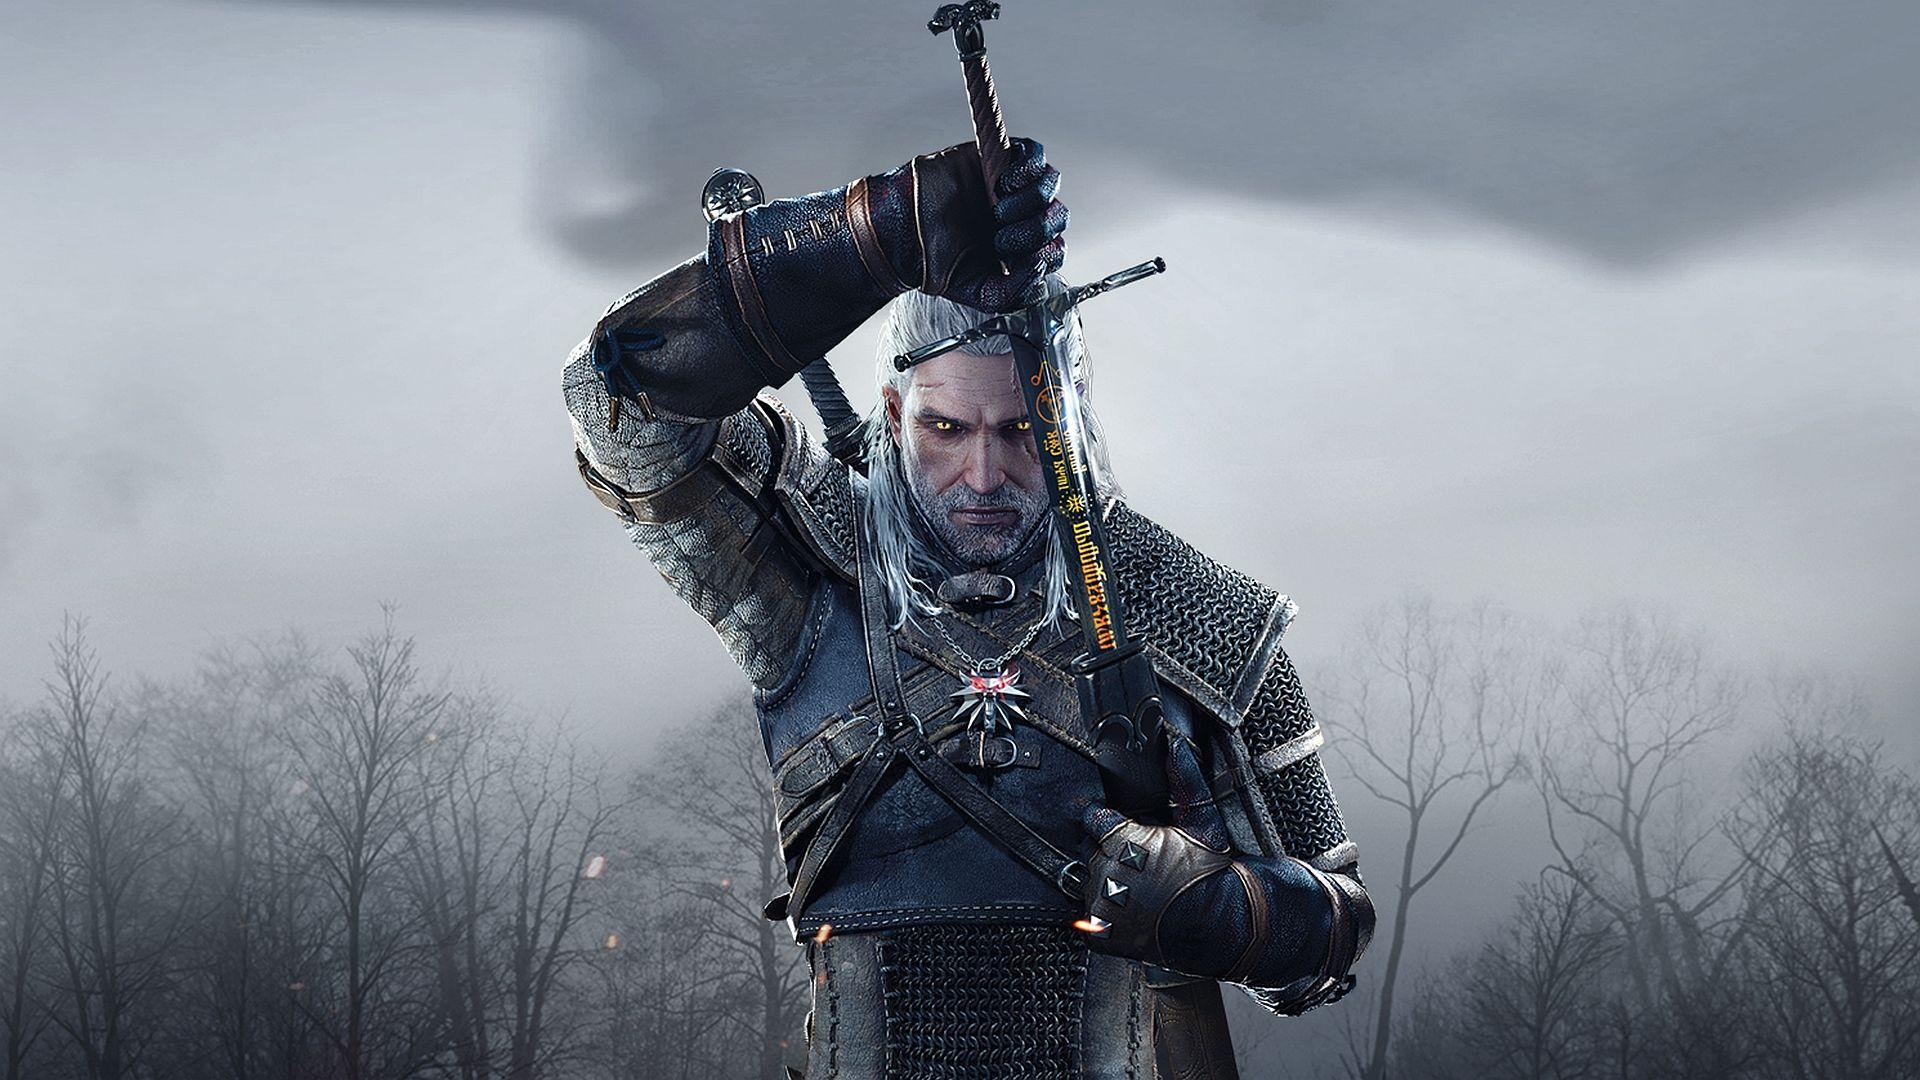 This The Witcher 3 mod turns the game into its original E3 style demo